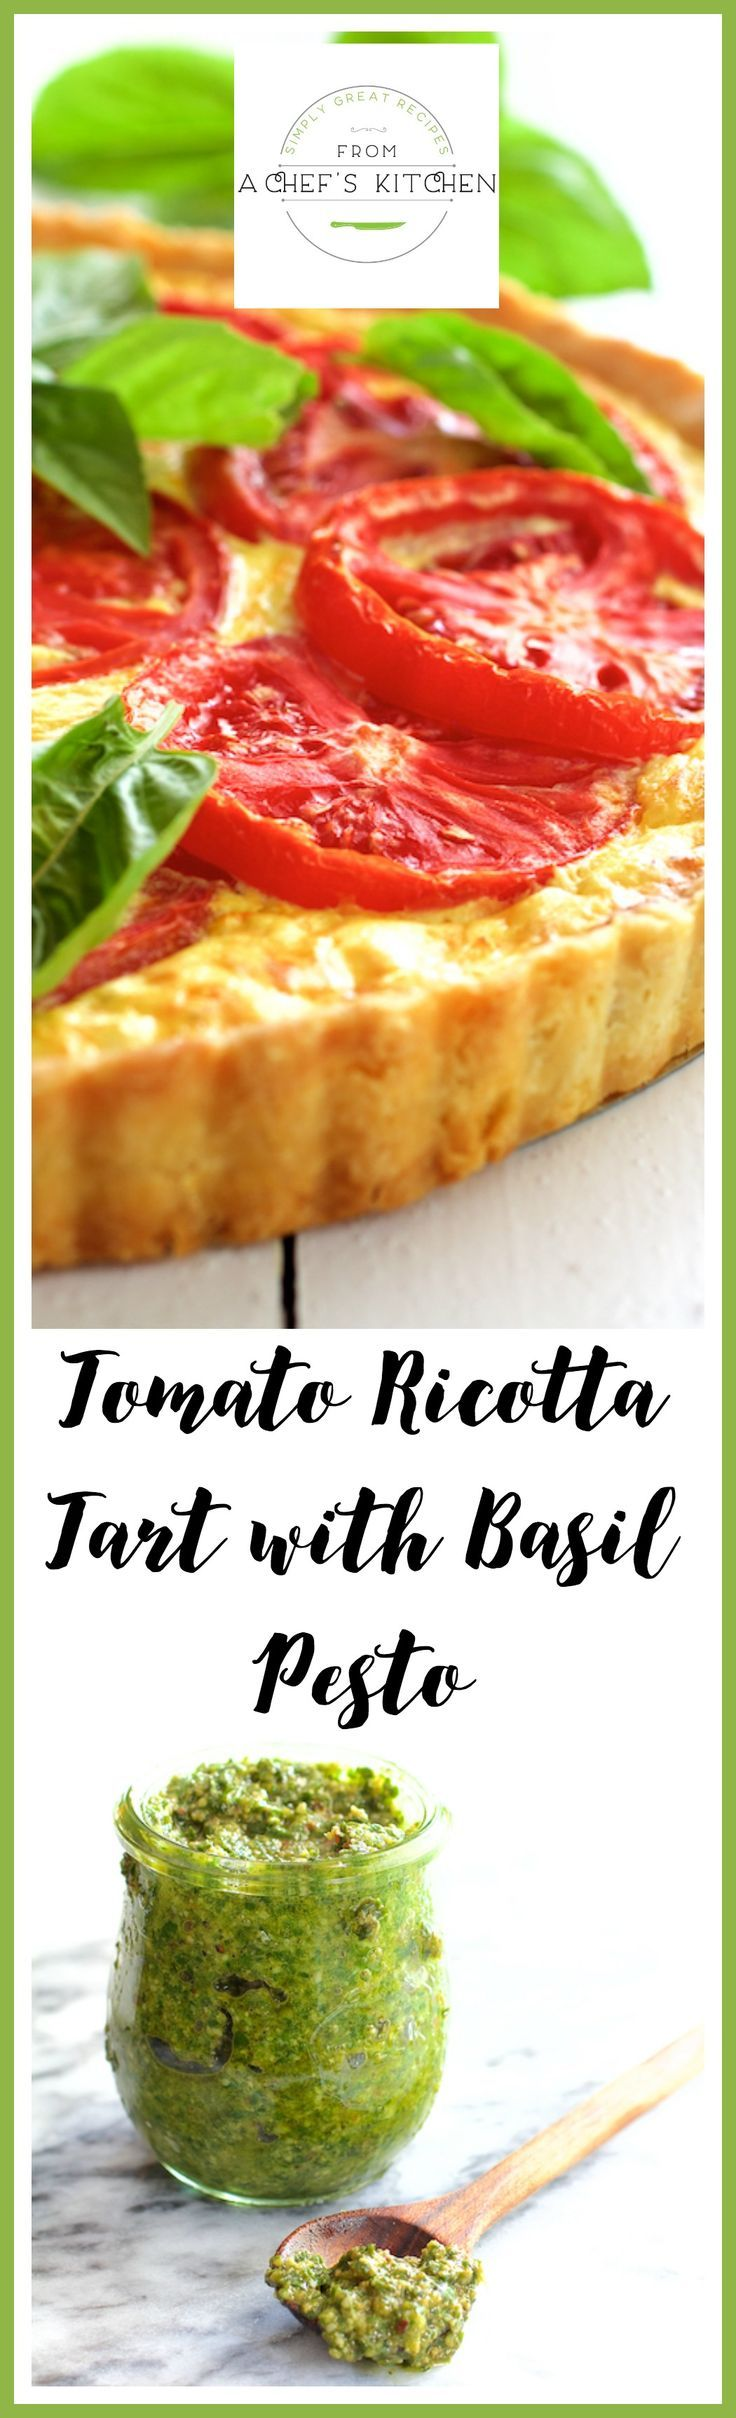 This savory Tomato Ricotta Tart with Basil Pesto is a delicious way to enjoy those tantalizing summer tomatoes and fresh basil before they're gone!